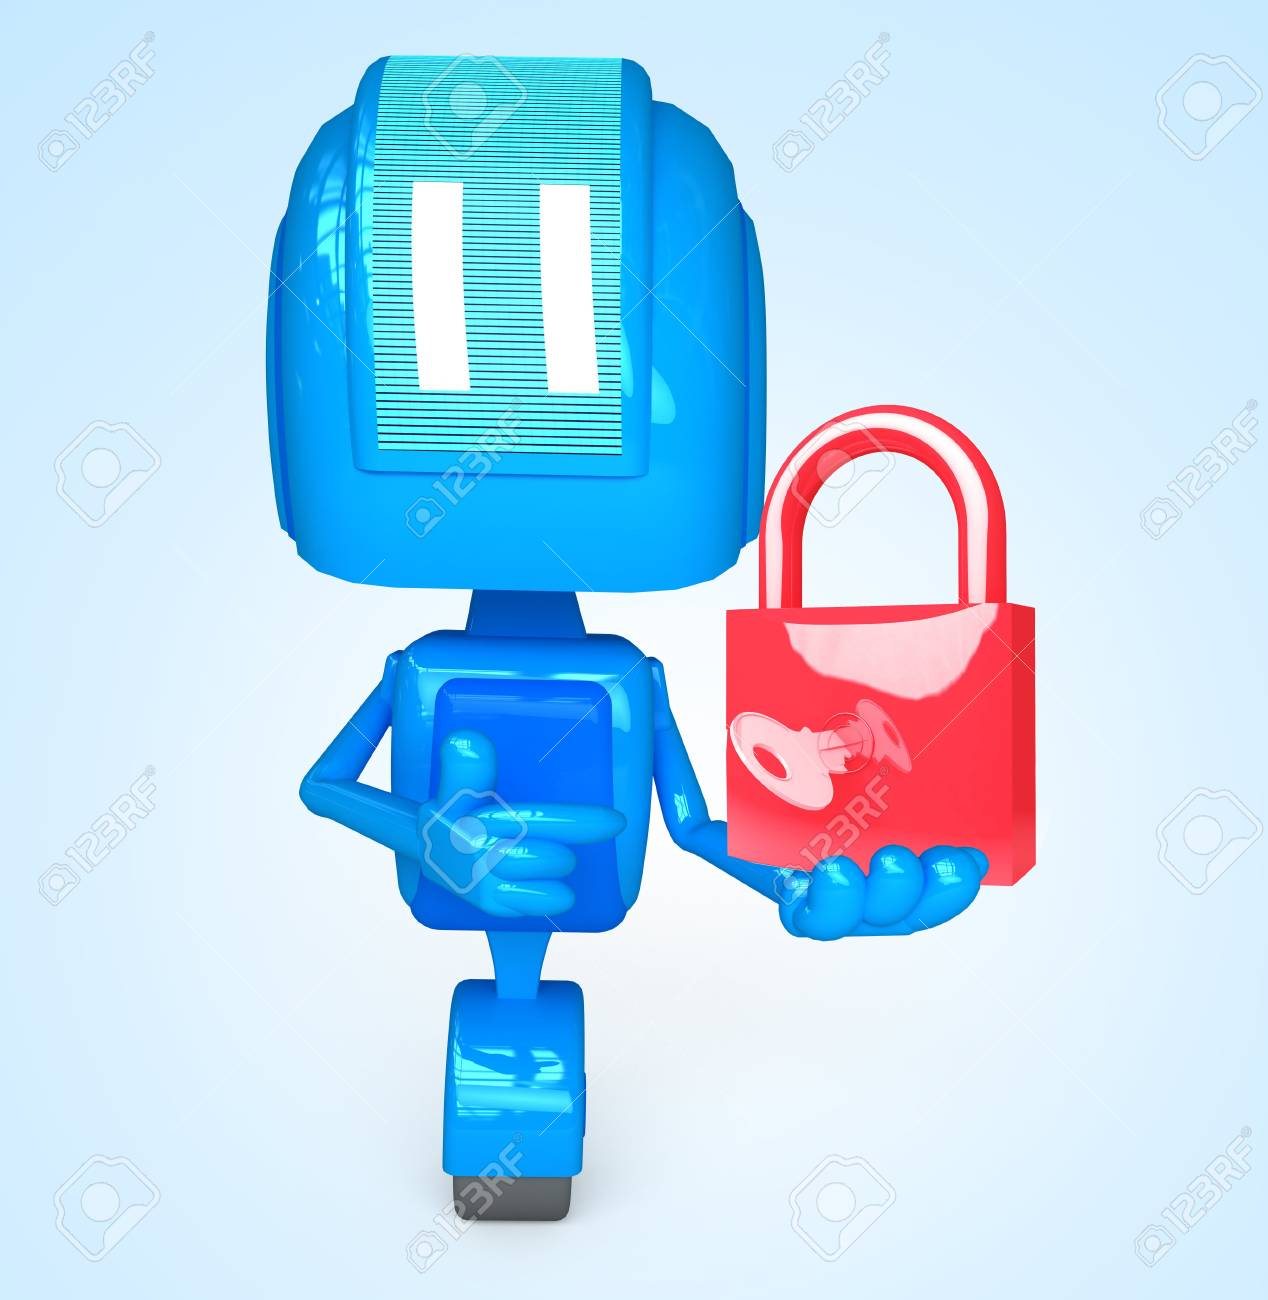 Robot holds lock Stock Photo - 13778868